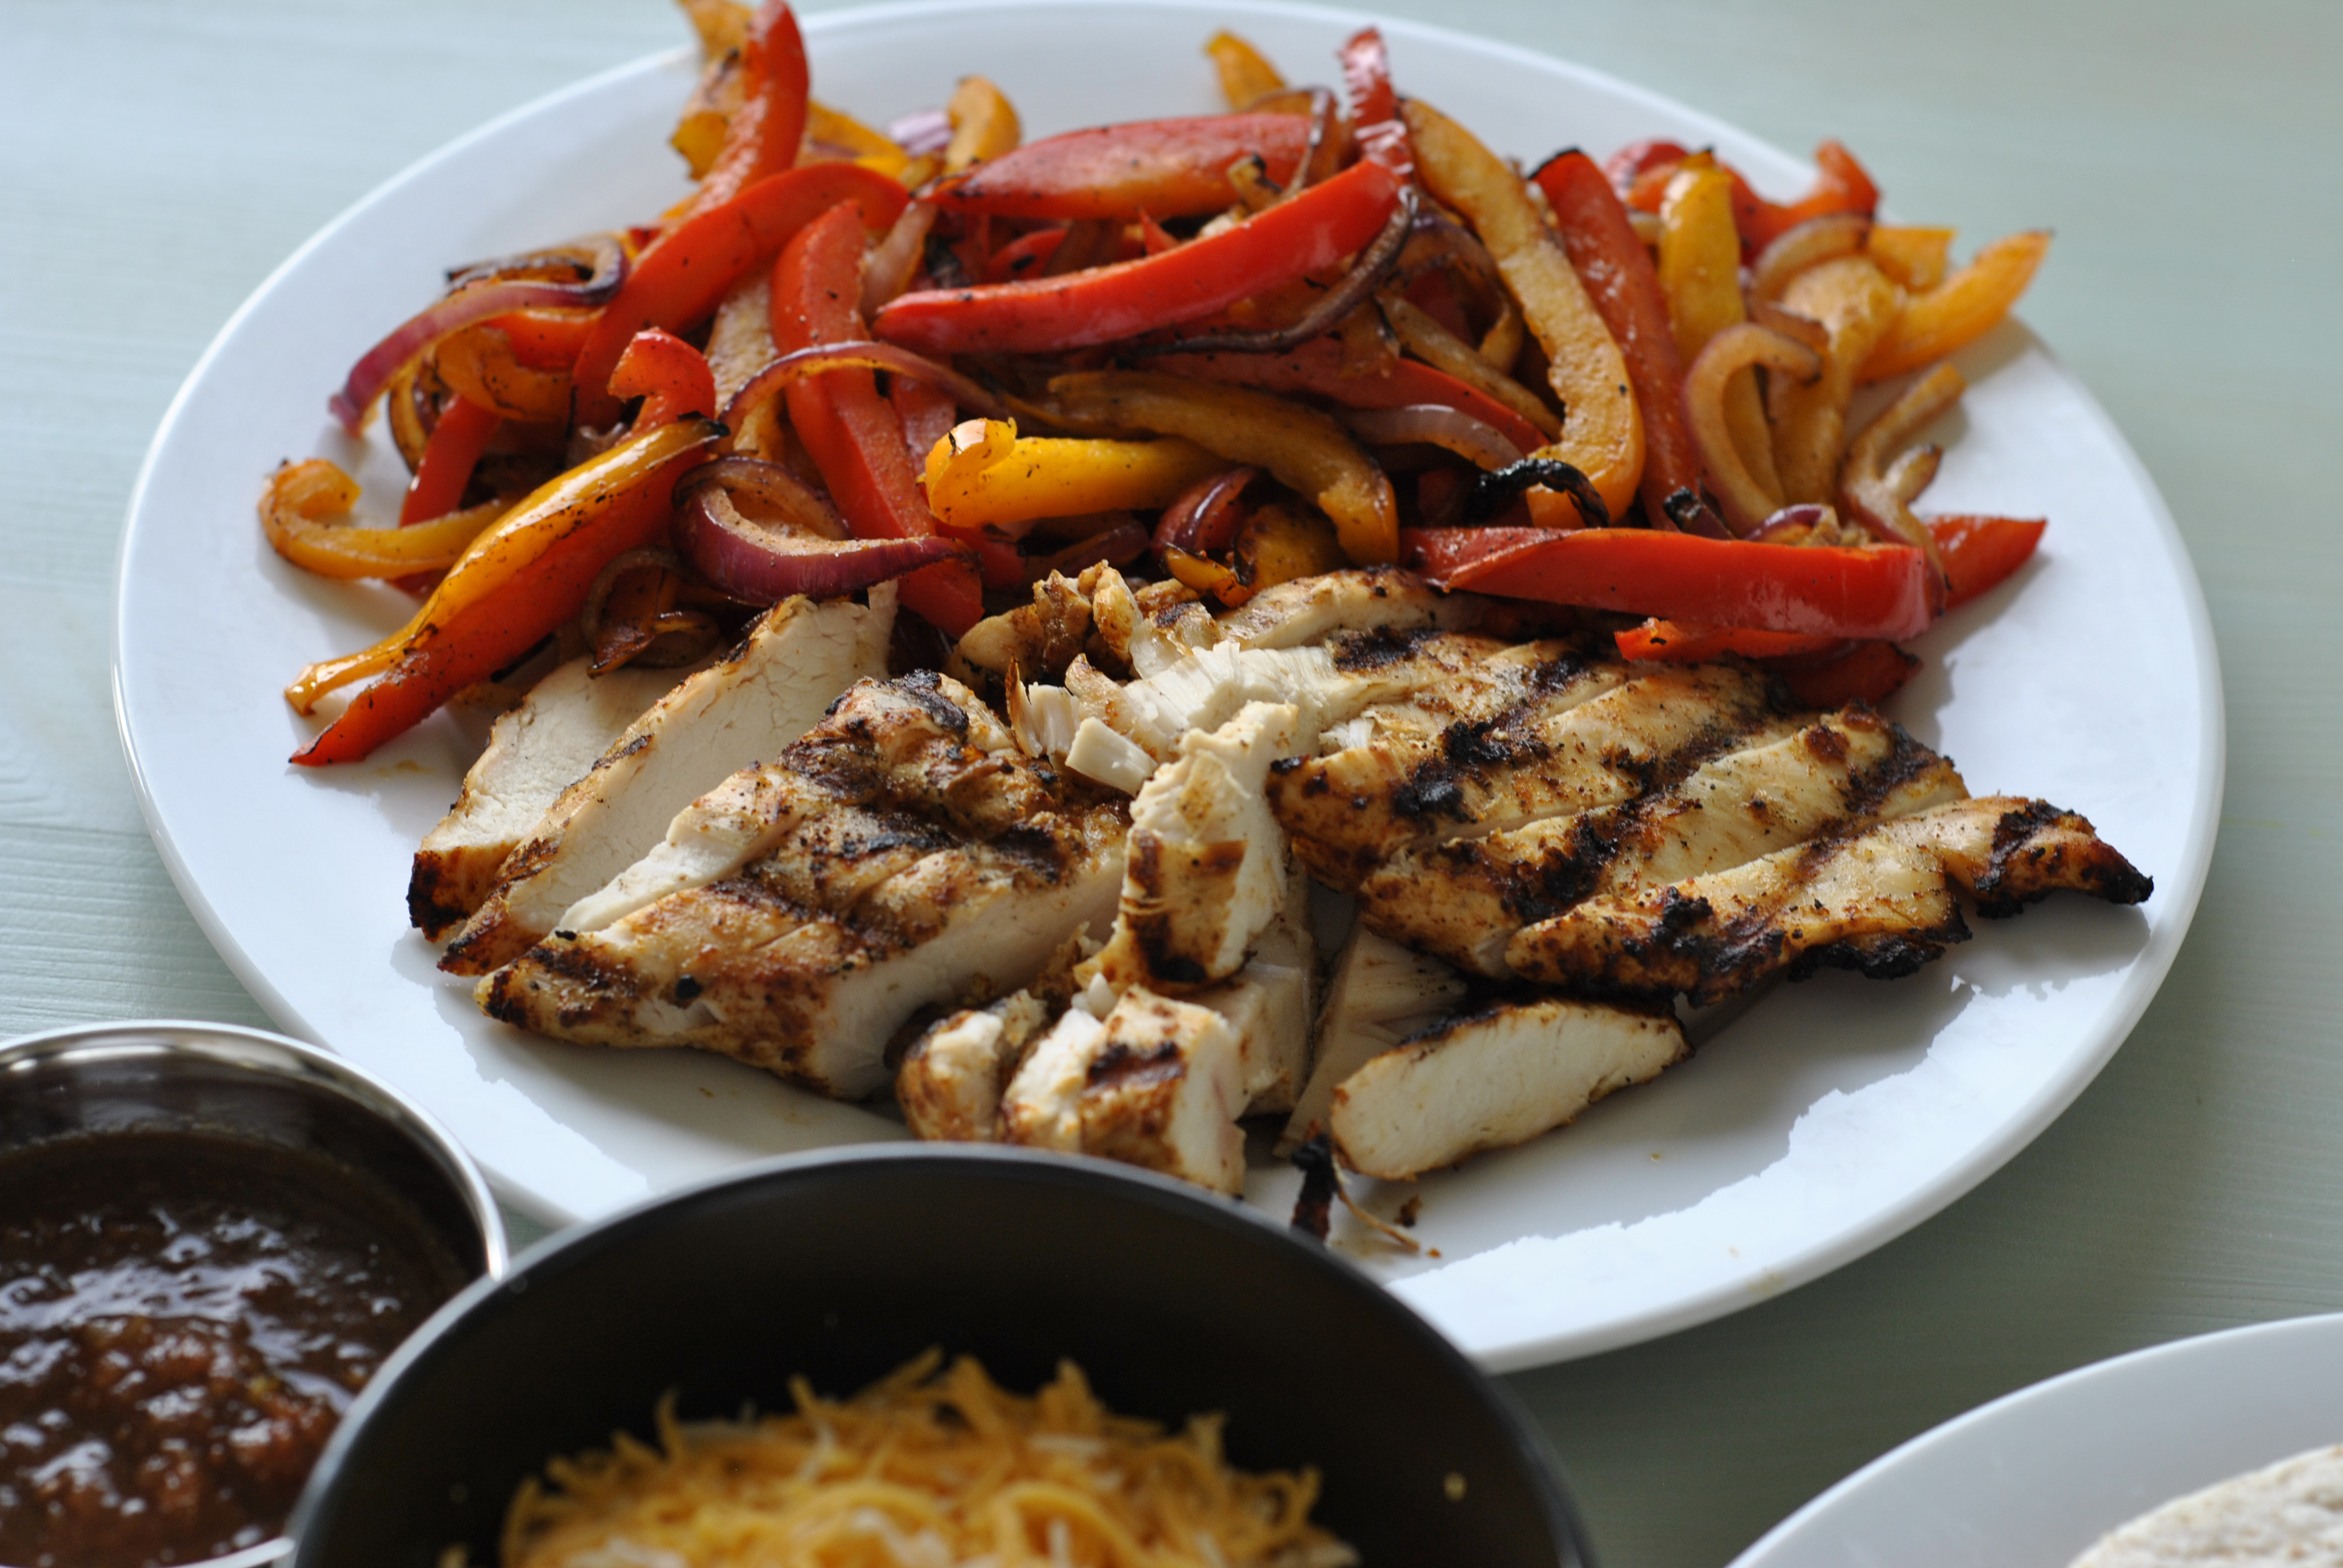 Chicken, grilled peppers and onions ready to be loaded onto the tortillas